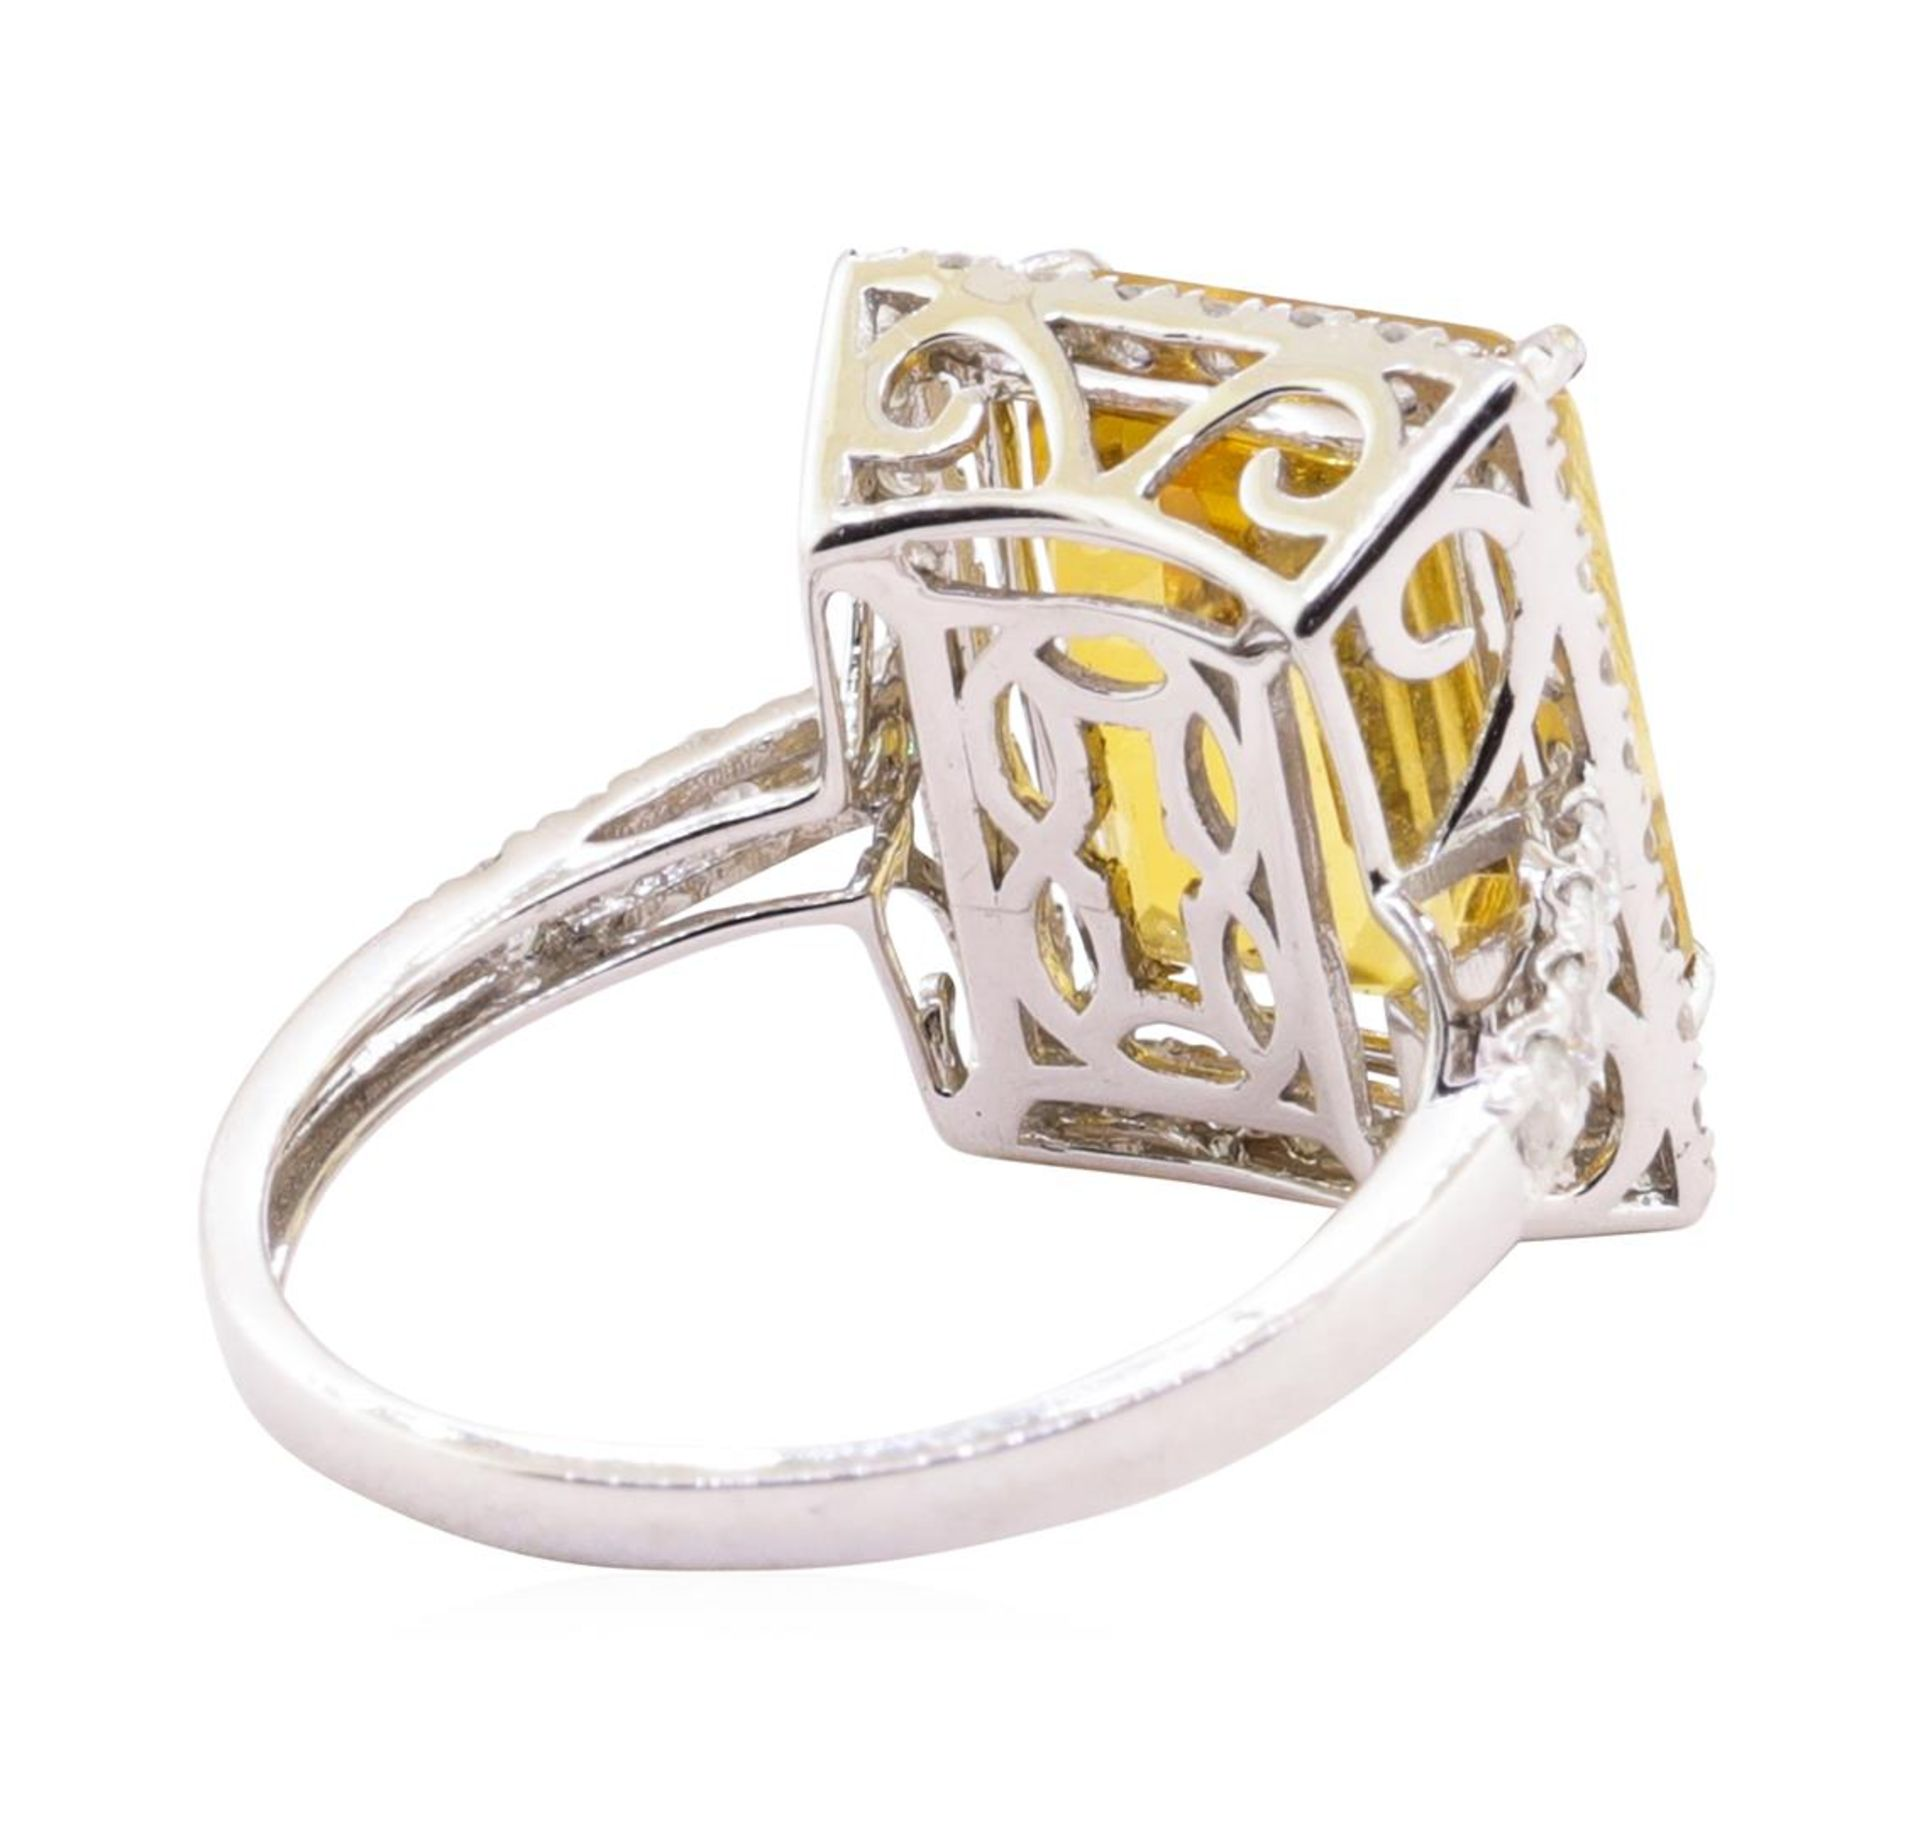 6.25ct Citrine and Diamond Ring - 14KT White Gold - Image 3 of 5